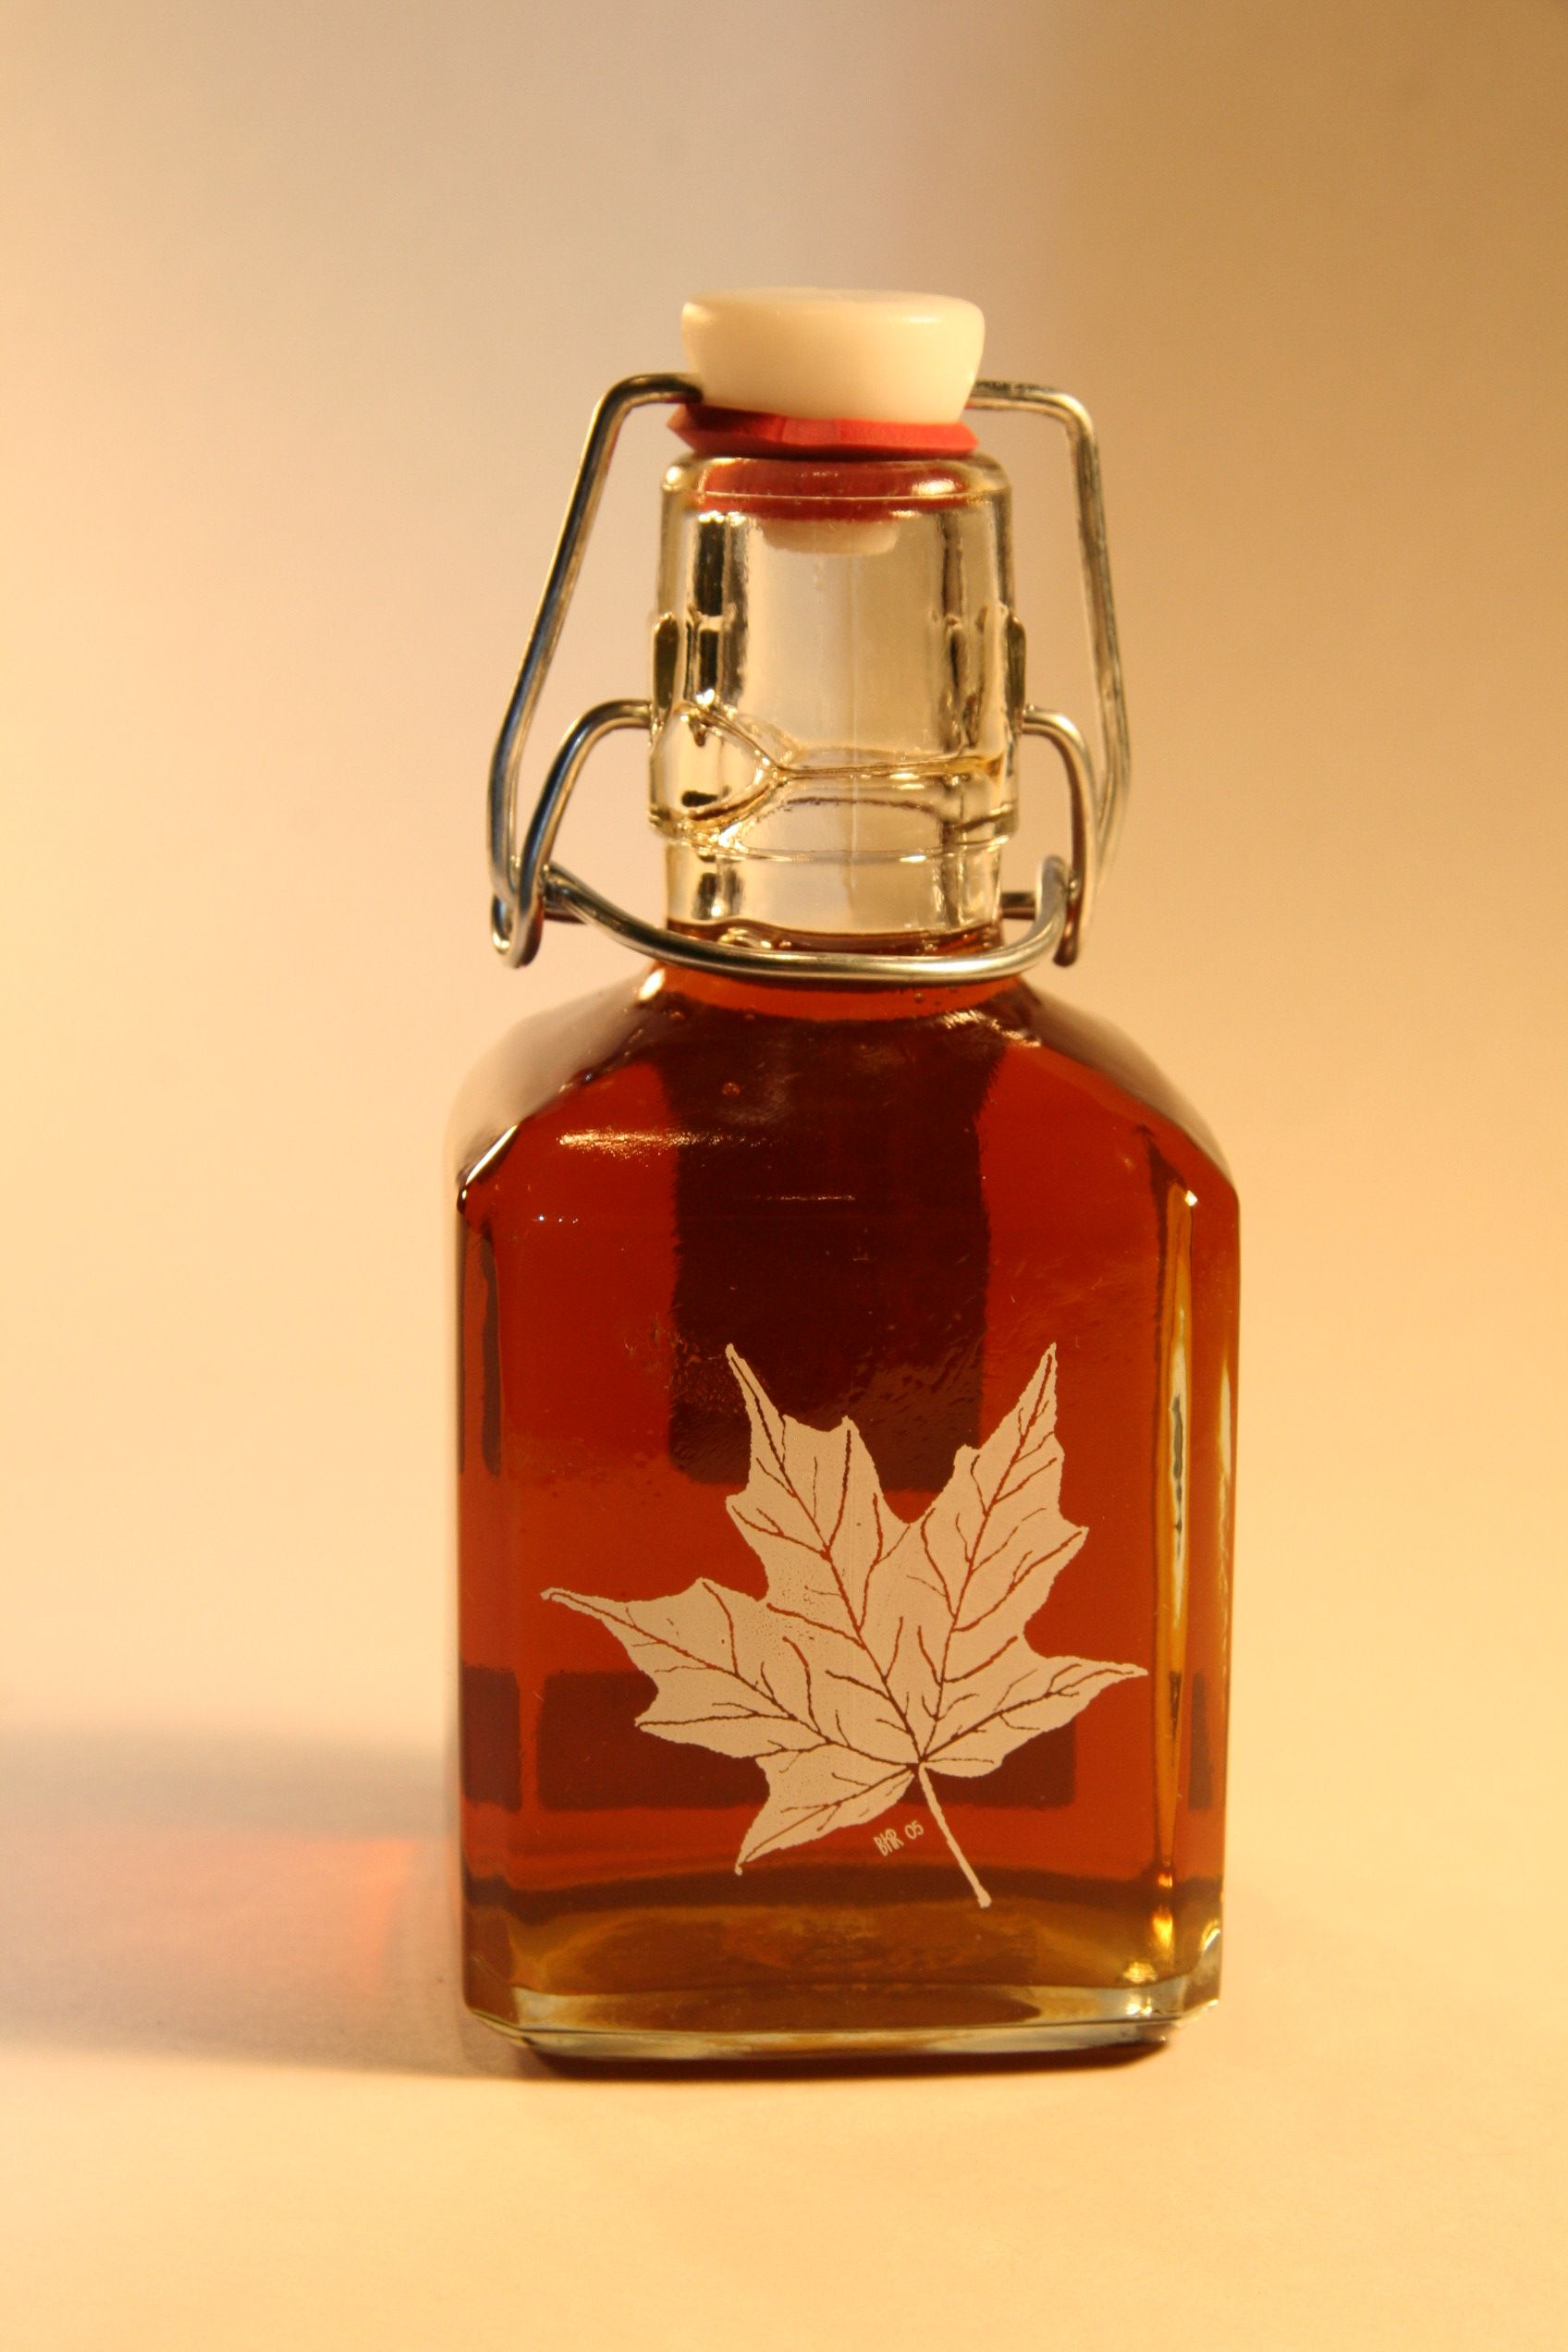 Shadow Hill Maple Syrup, Ontario, NY - logo/image directly on bottle